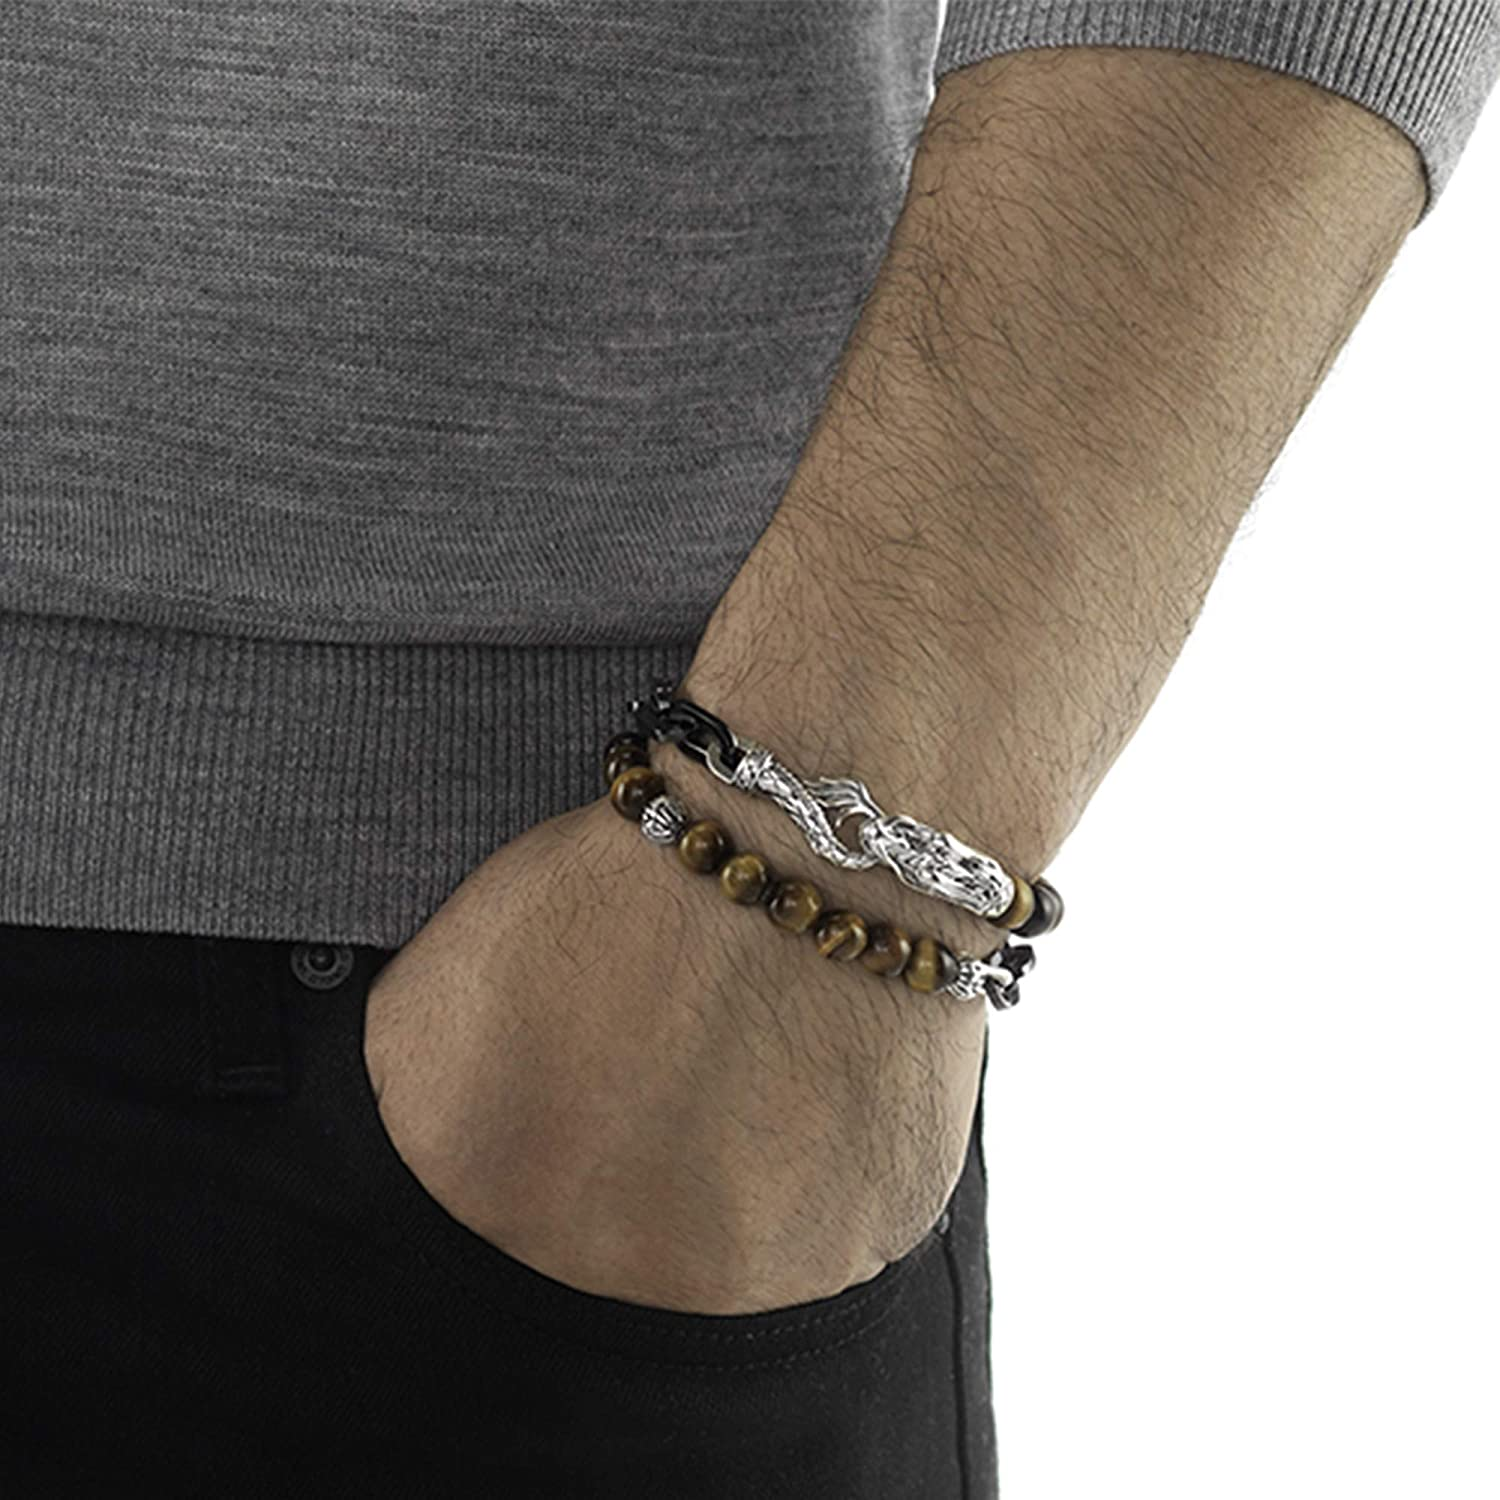 Tiger Iron Bracelet or Anklet All Natural Tiger Iron Free Form      B001 3.3 mm Gold Filled Figure 8 Chain With Hook Clasp